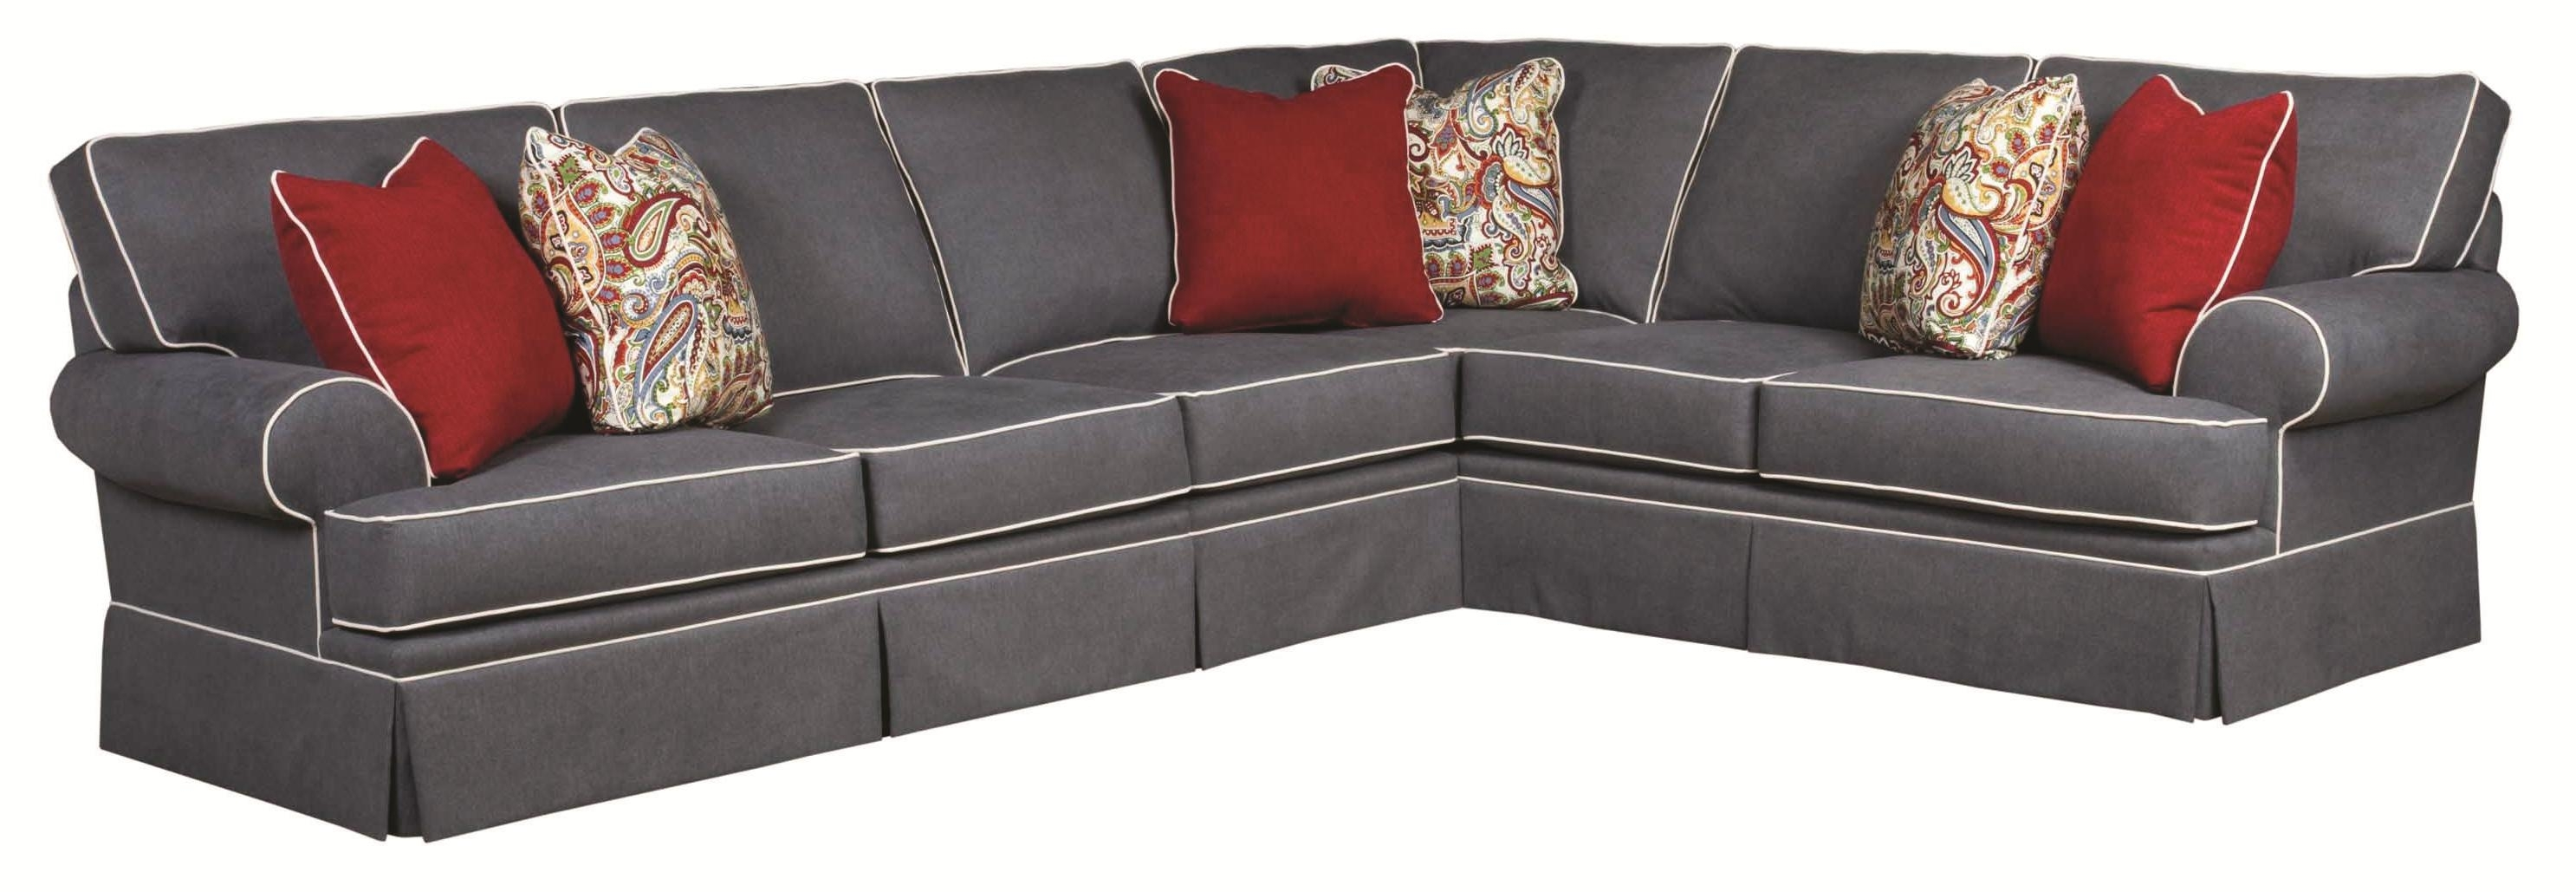 Broyhill Furniture Emily Traditional 3 Piece Sectional Sofa With Intended For Sam Levitz Sectional Sofas (Image 2 of 10)